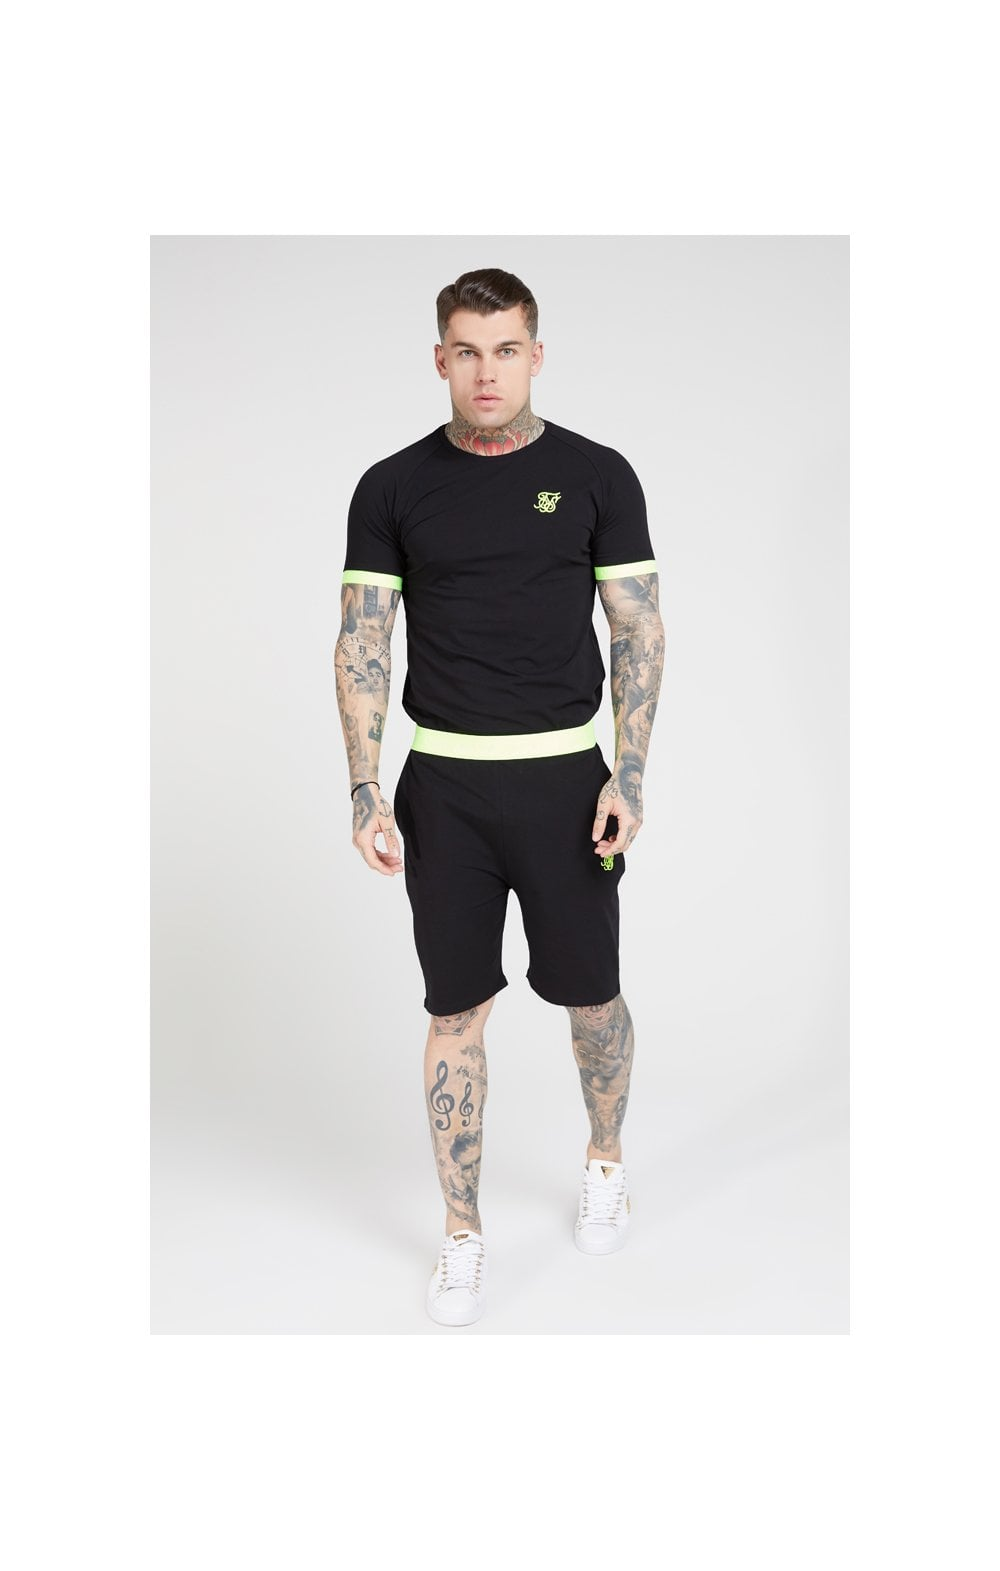 SikSilk S/S Neon Tech Tee – Black & Neon Yellow (2)